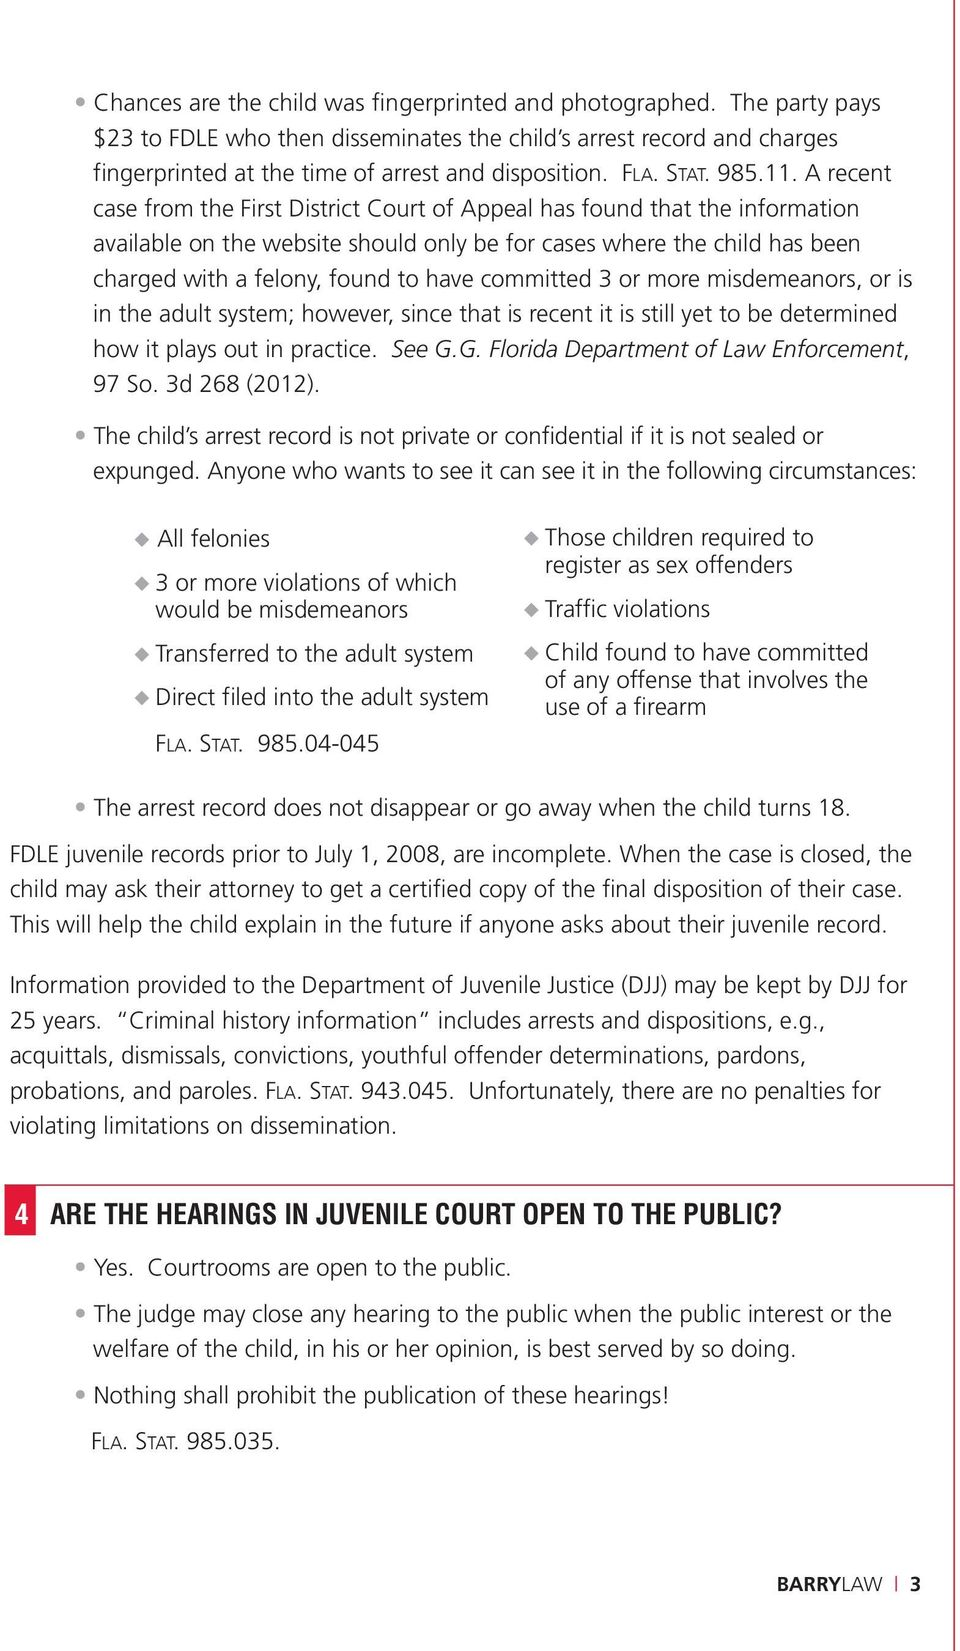 A recent case from the First District Court of Appeal has found that the information available on the website should only be for cases where the child has been charged with a felony, found to have